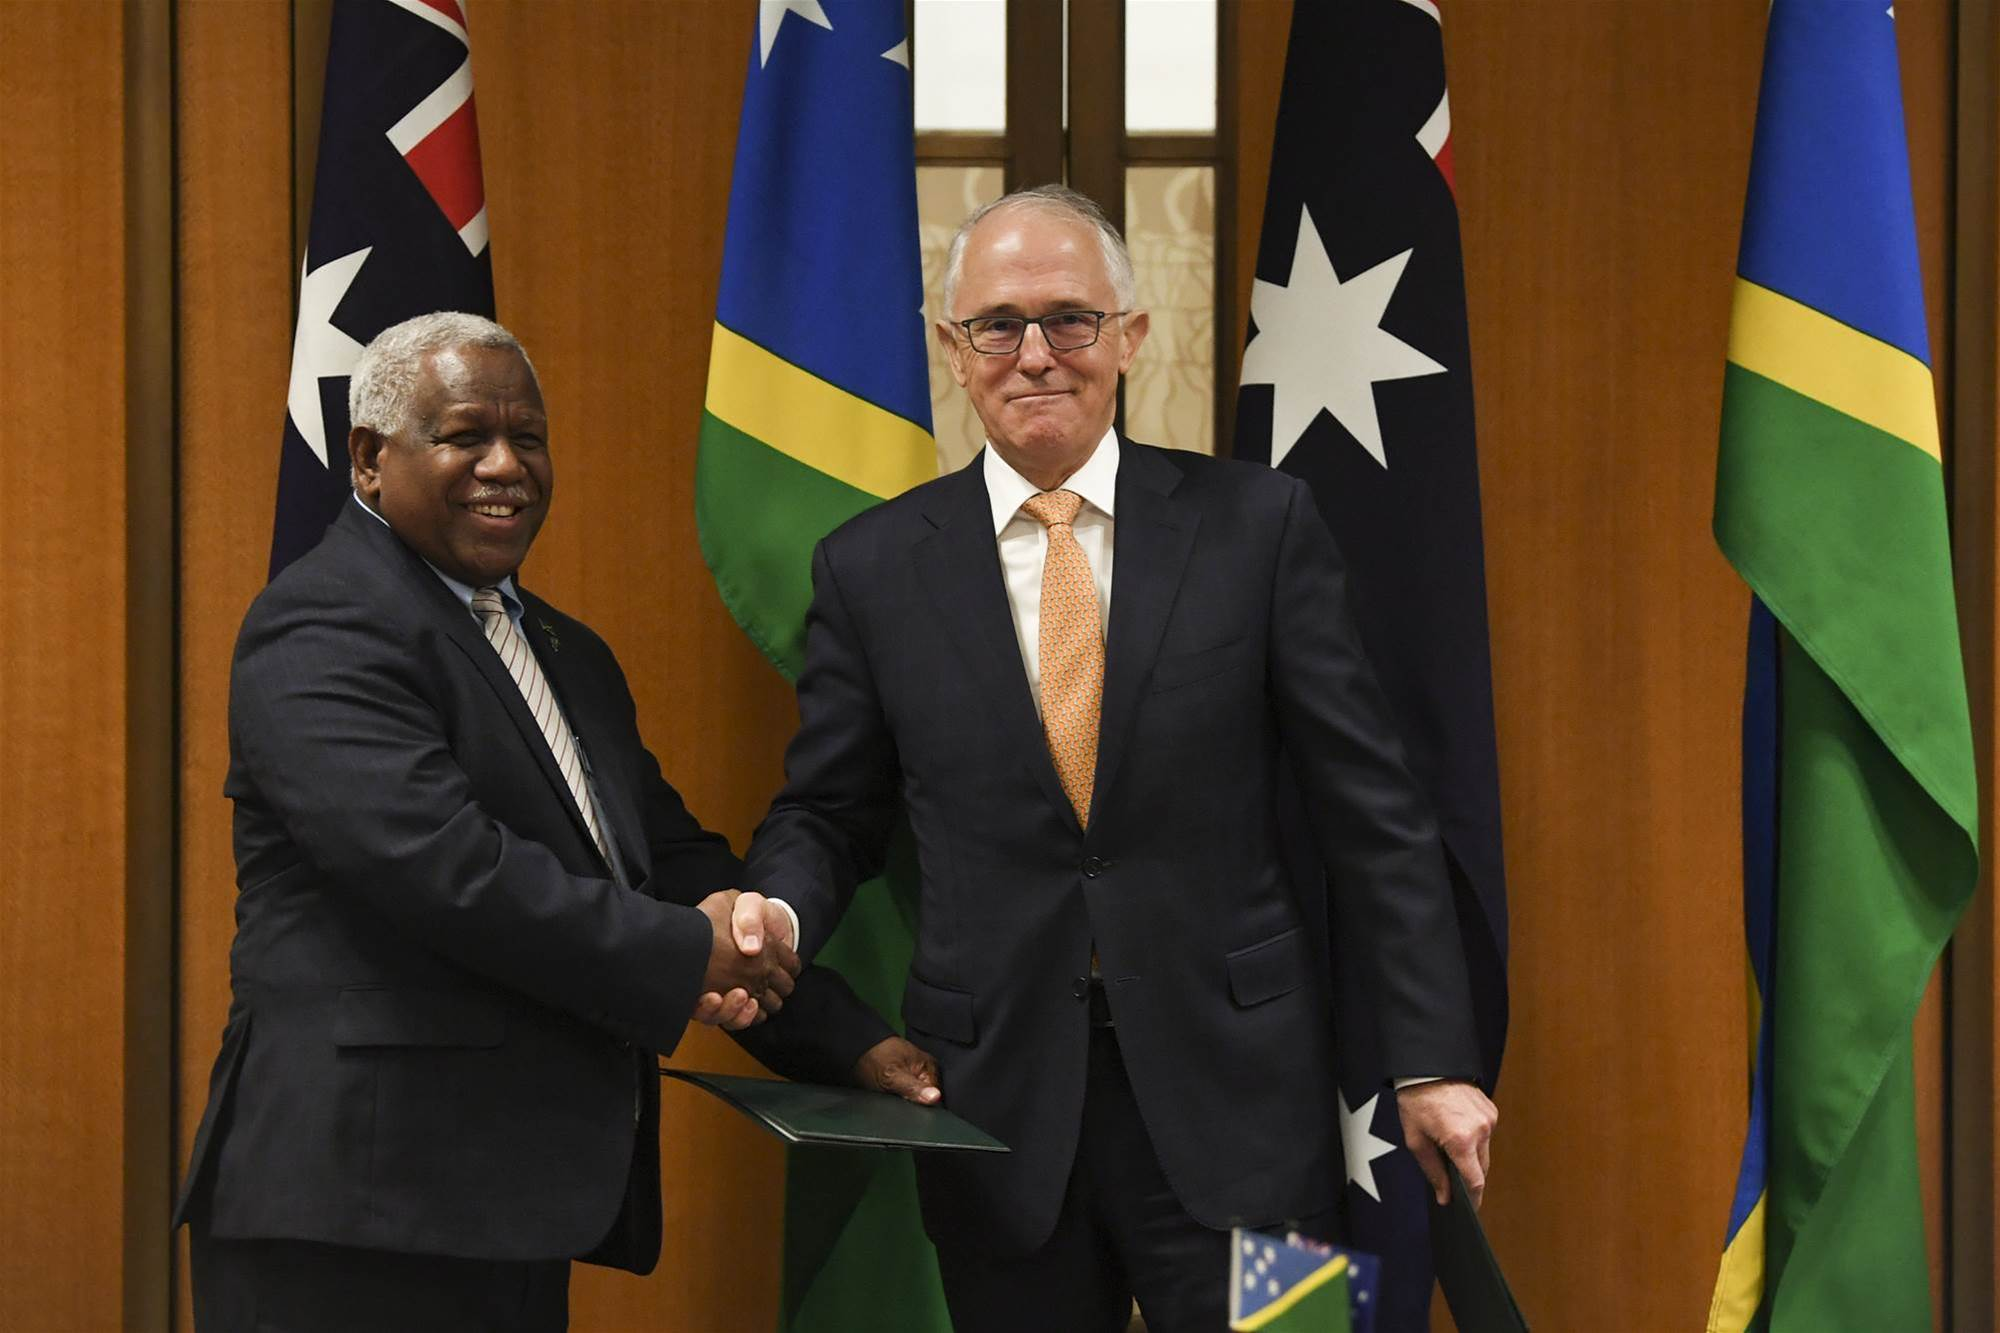 Australian government to fund internet cabling, cybersecurity centre for Solomon Islands